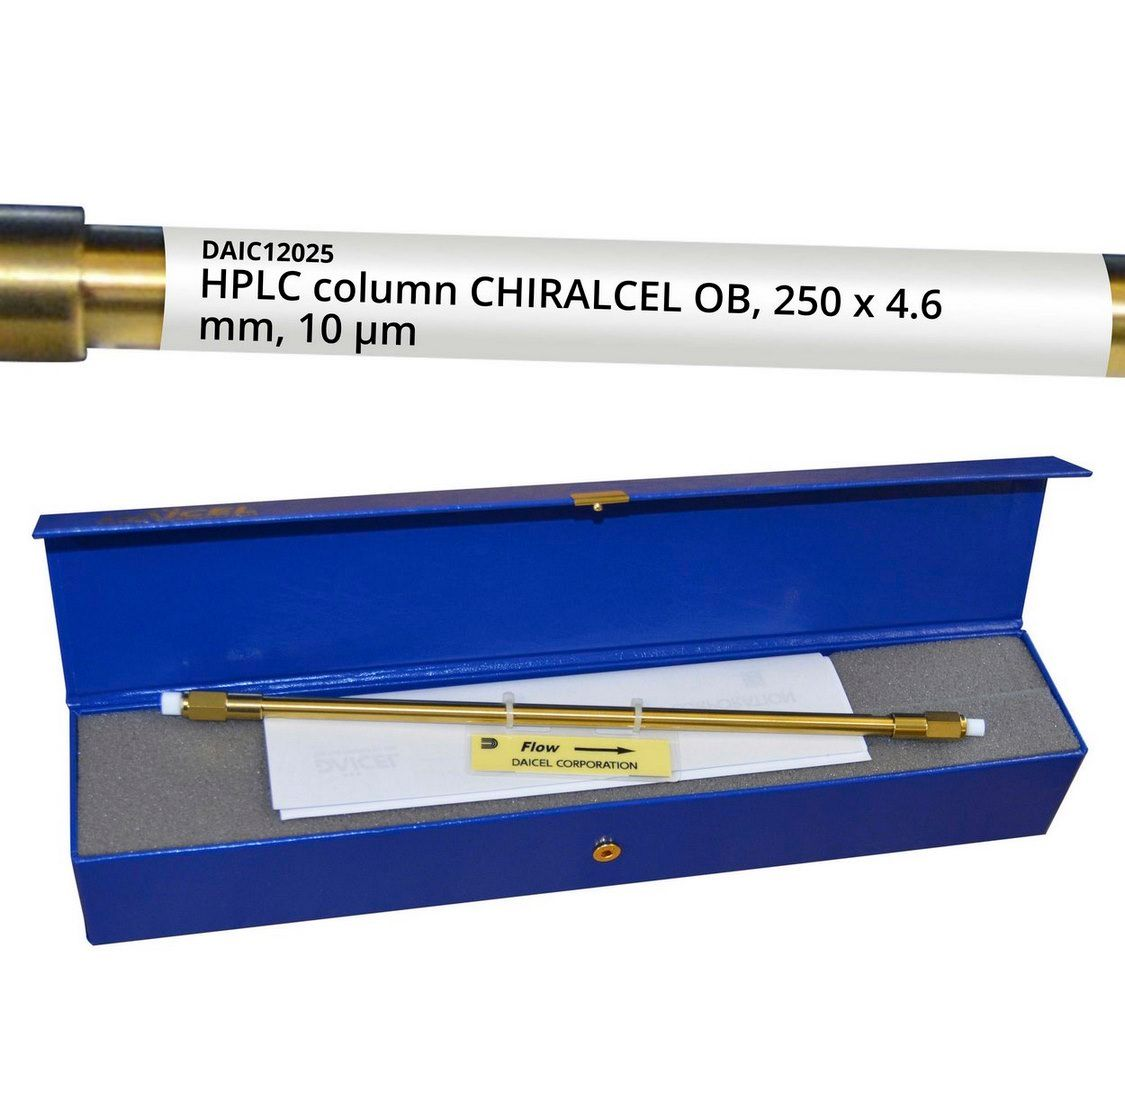 HPLC Column CHIRALCEL OB, 250 x 4.6 mm, 10 µm